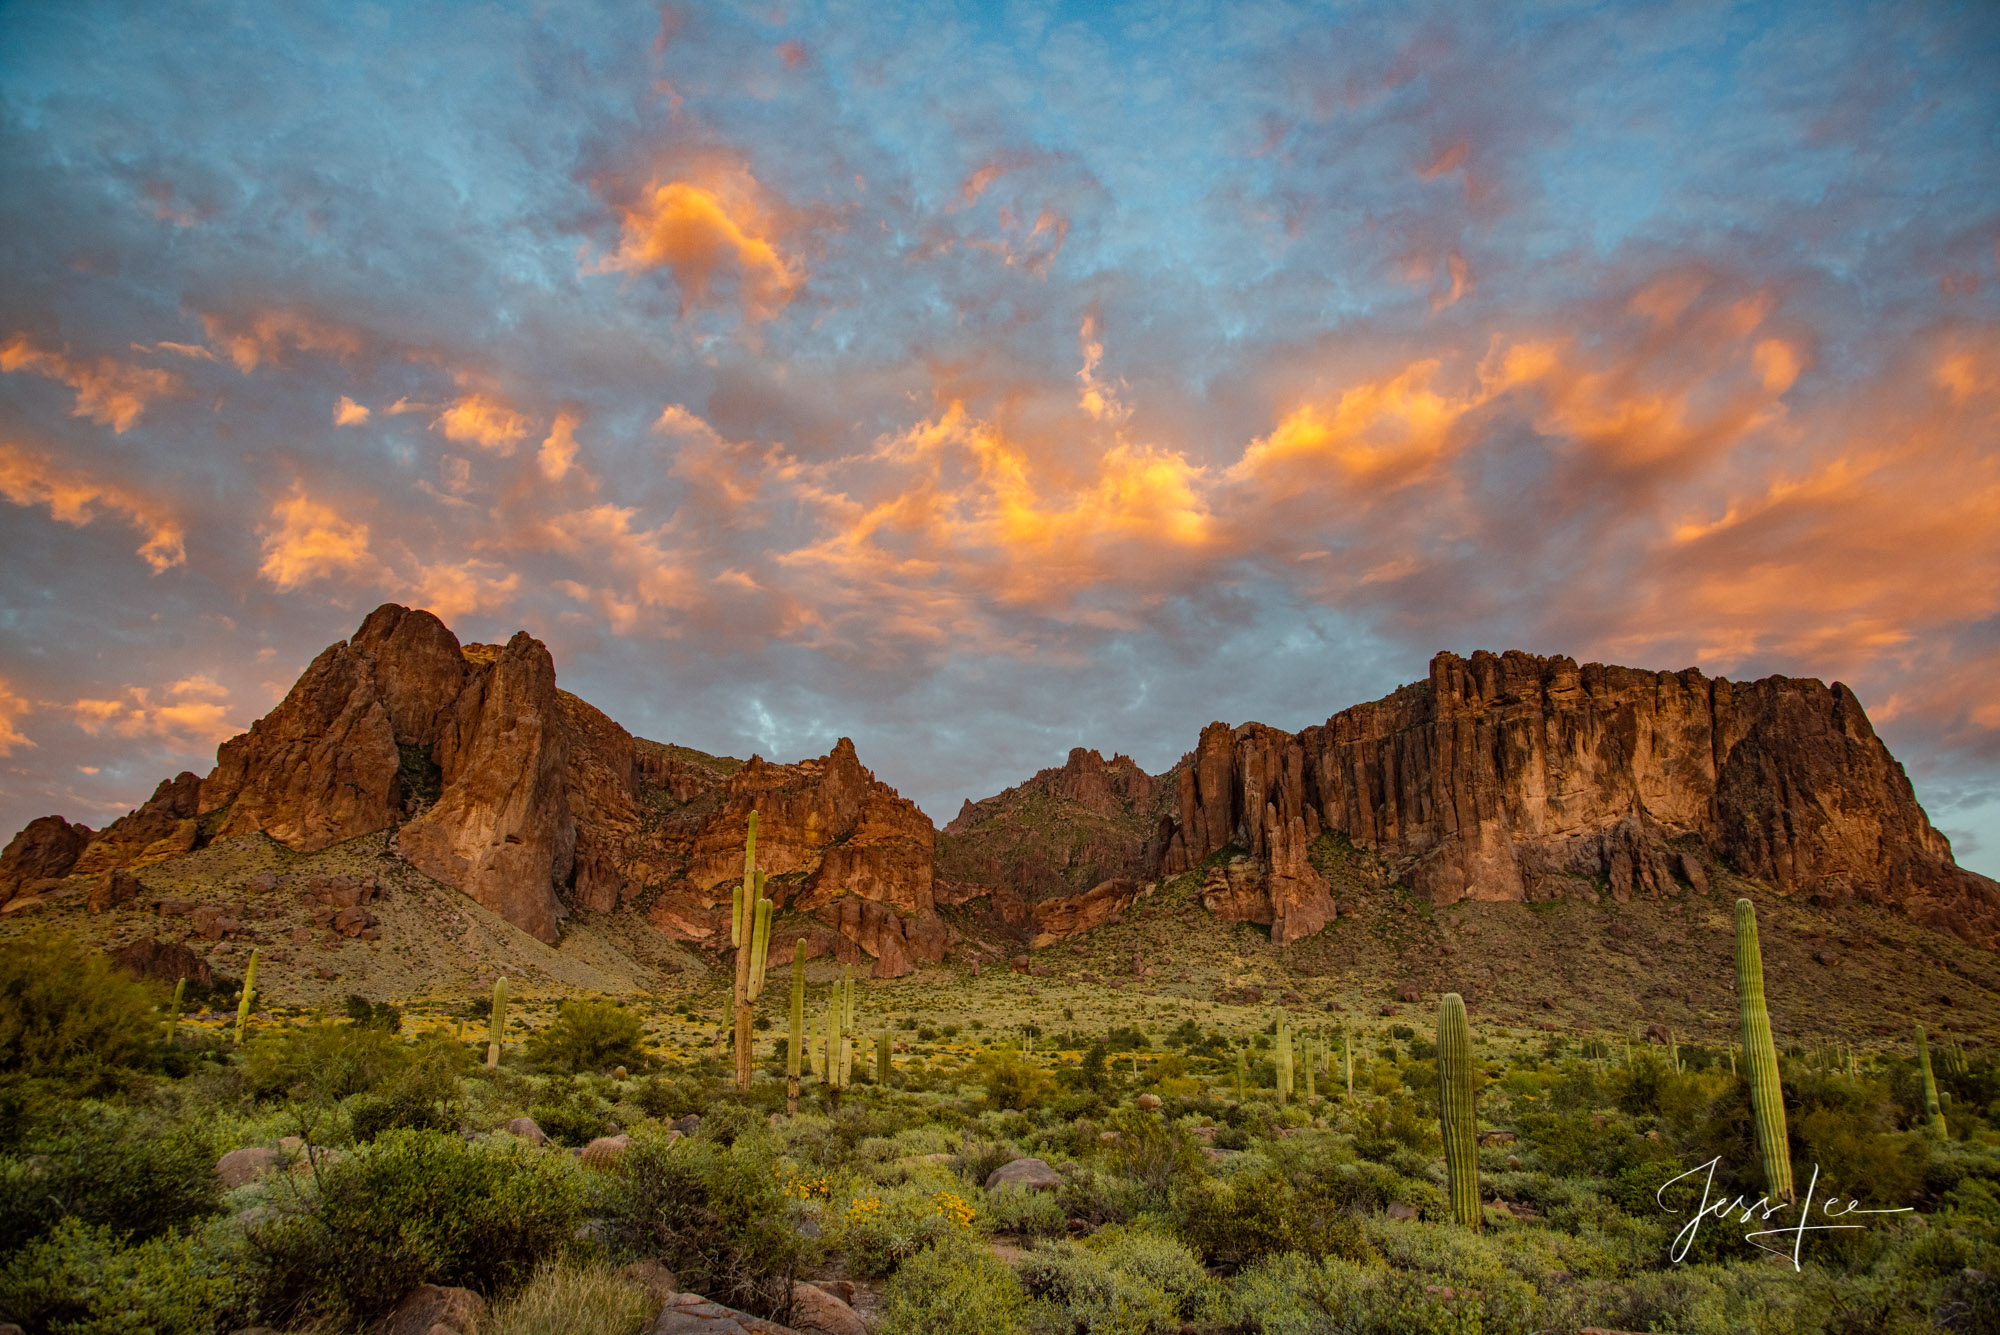 Fine Art Limited Edition Photography of Arizona. Arizona Mountain Landscapes.This is part of the luxurious collection of fine...